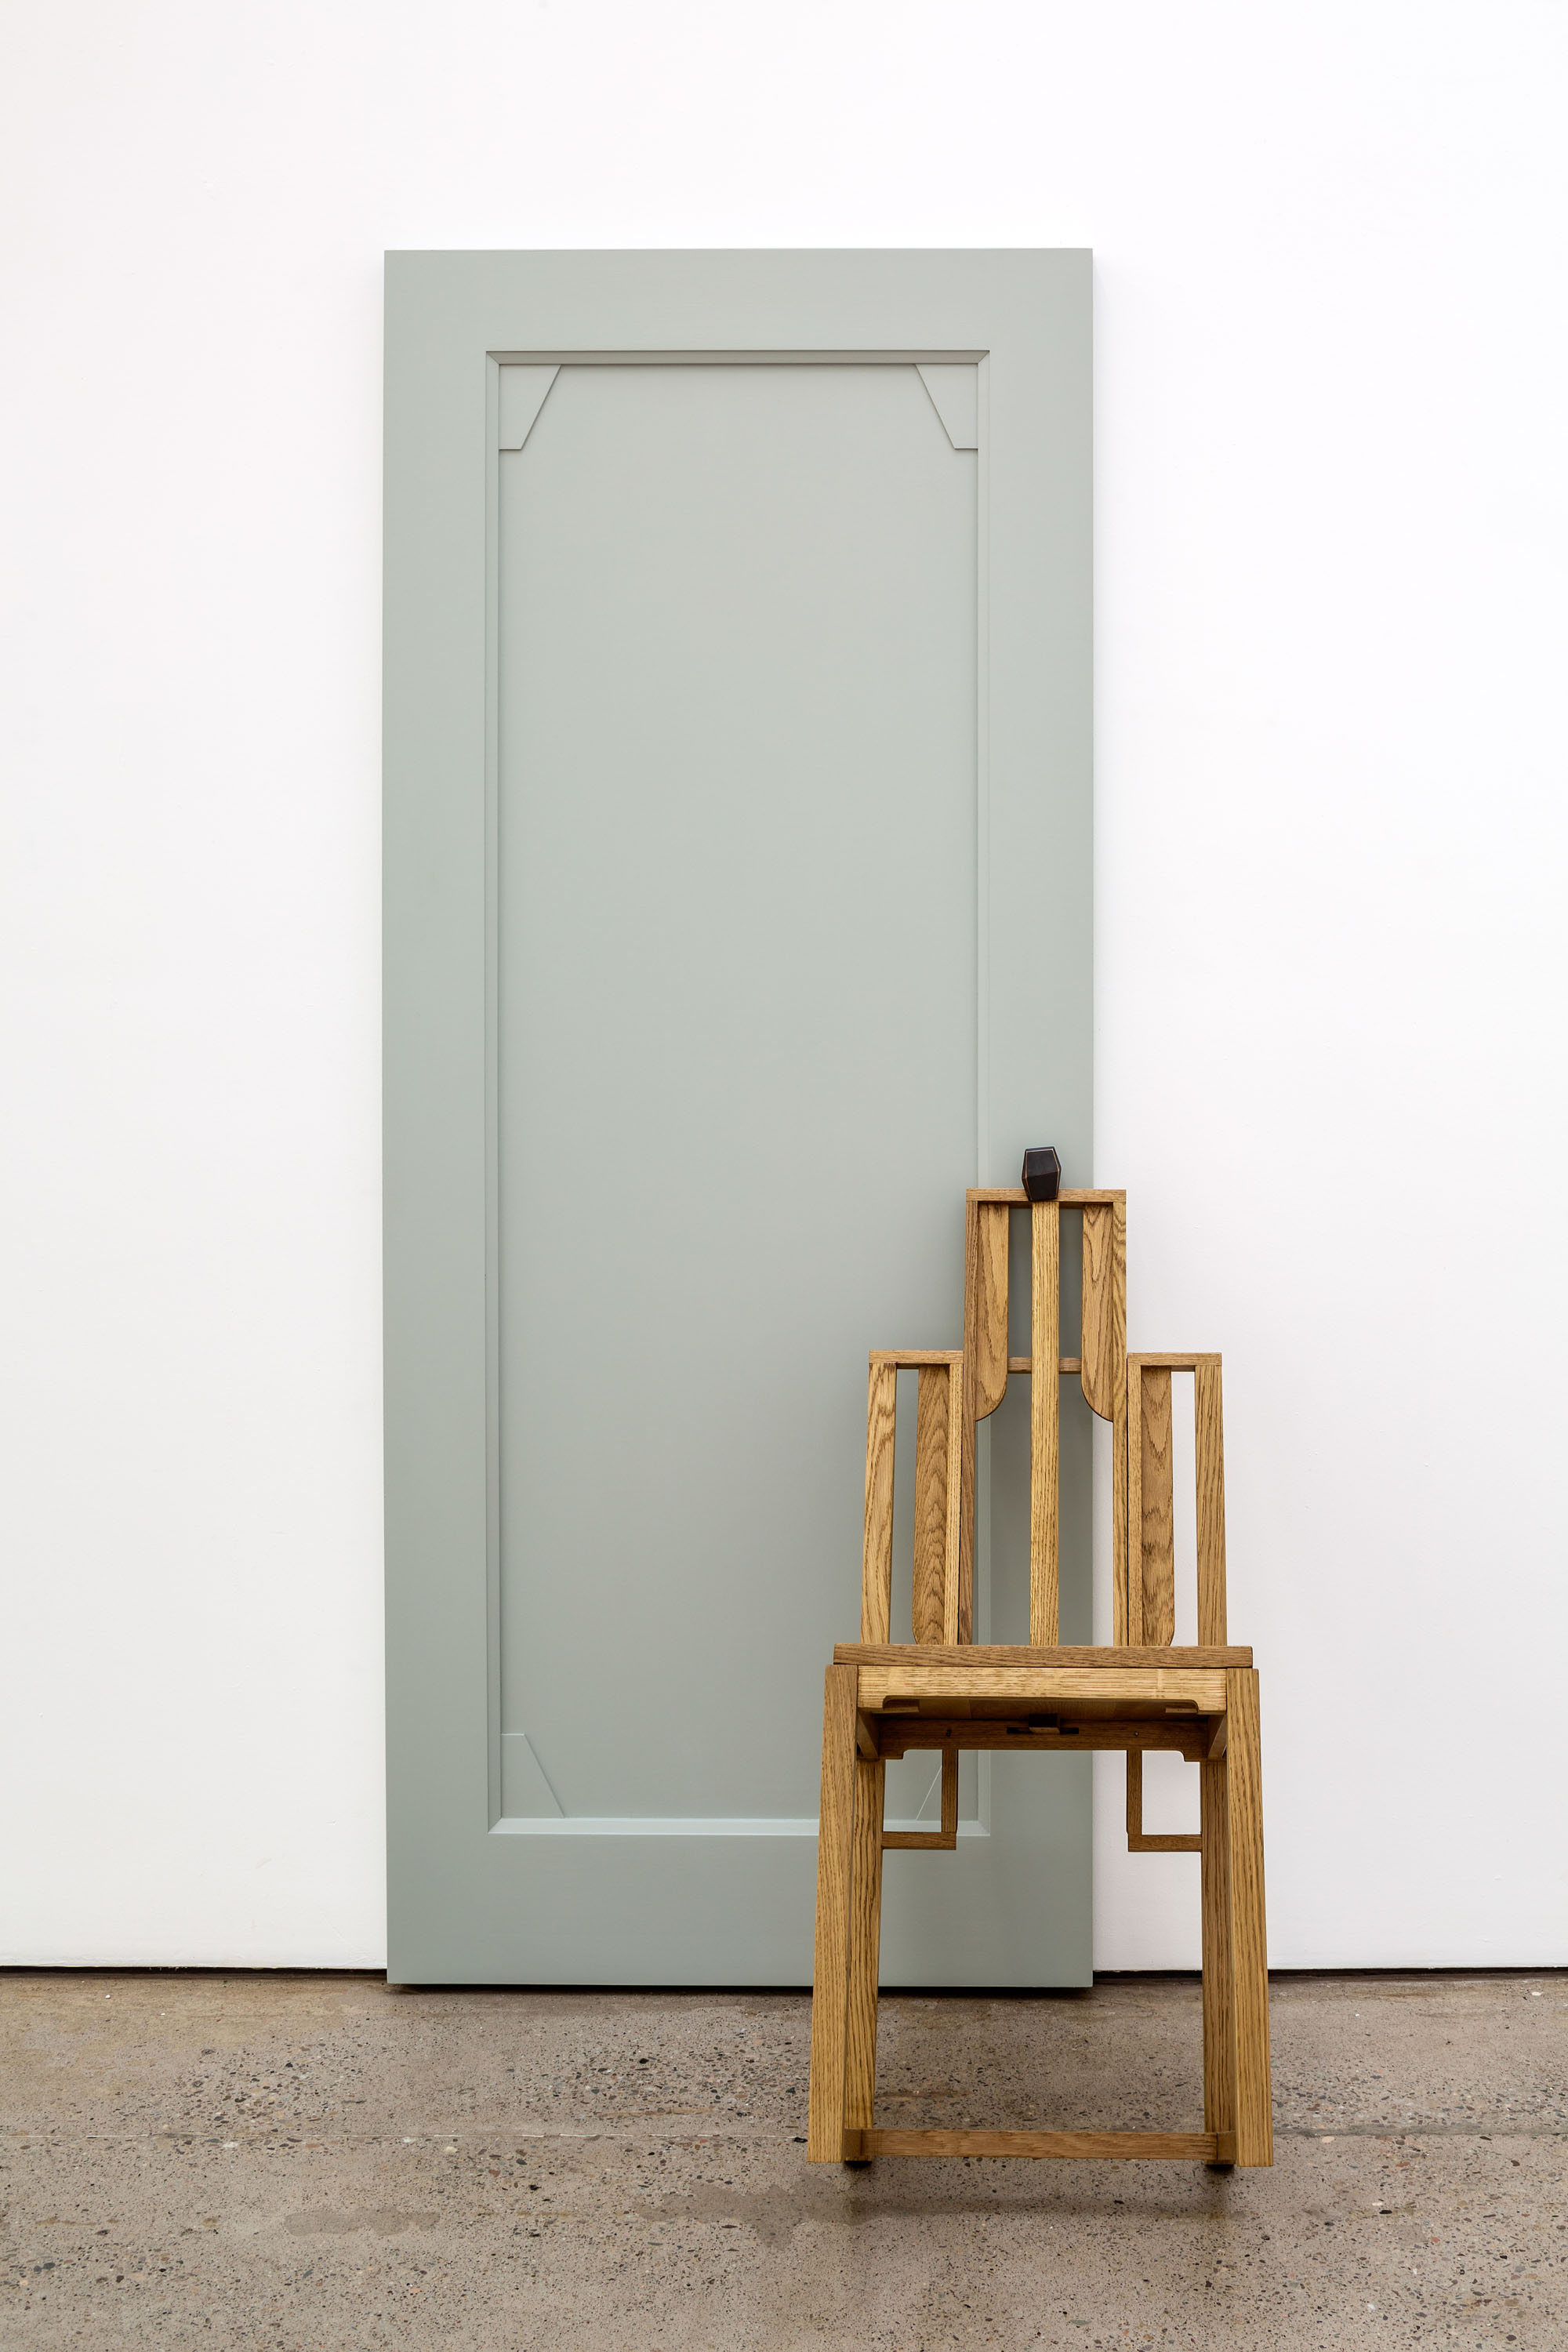 No Information or Memory, 2021, Stained wood, painted wood, brass, 205.5 x 99.5 x 85 cm